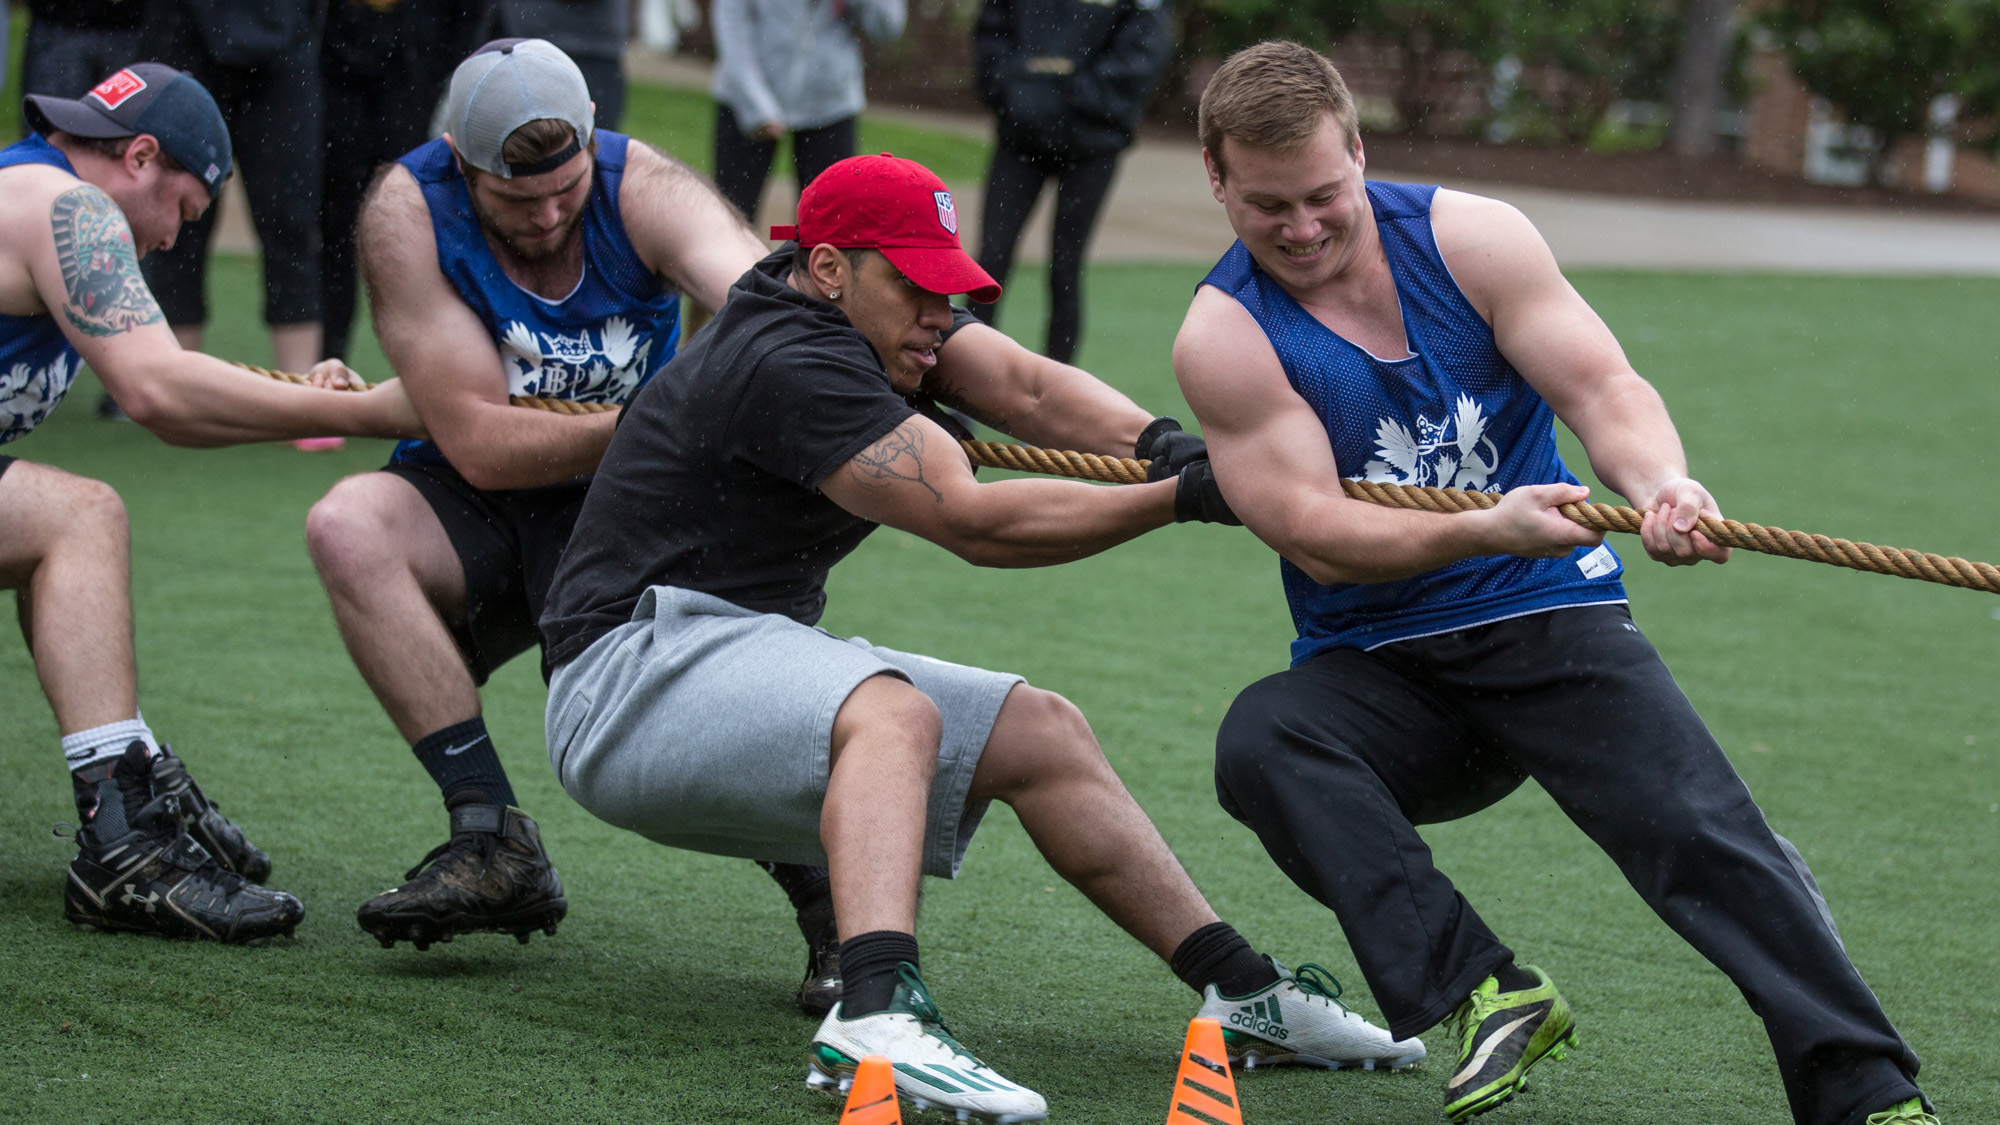 Greek students participate in tug-of-war.